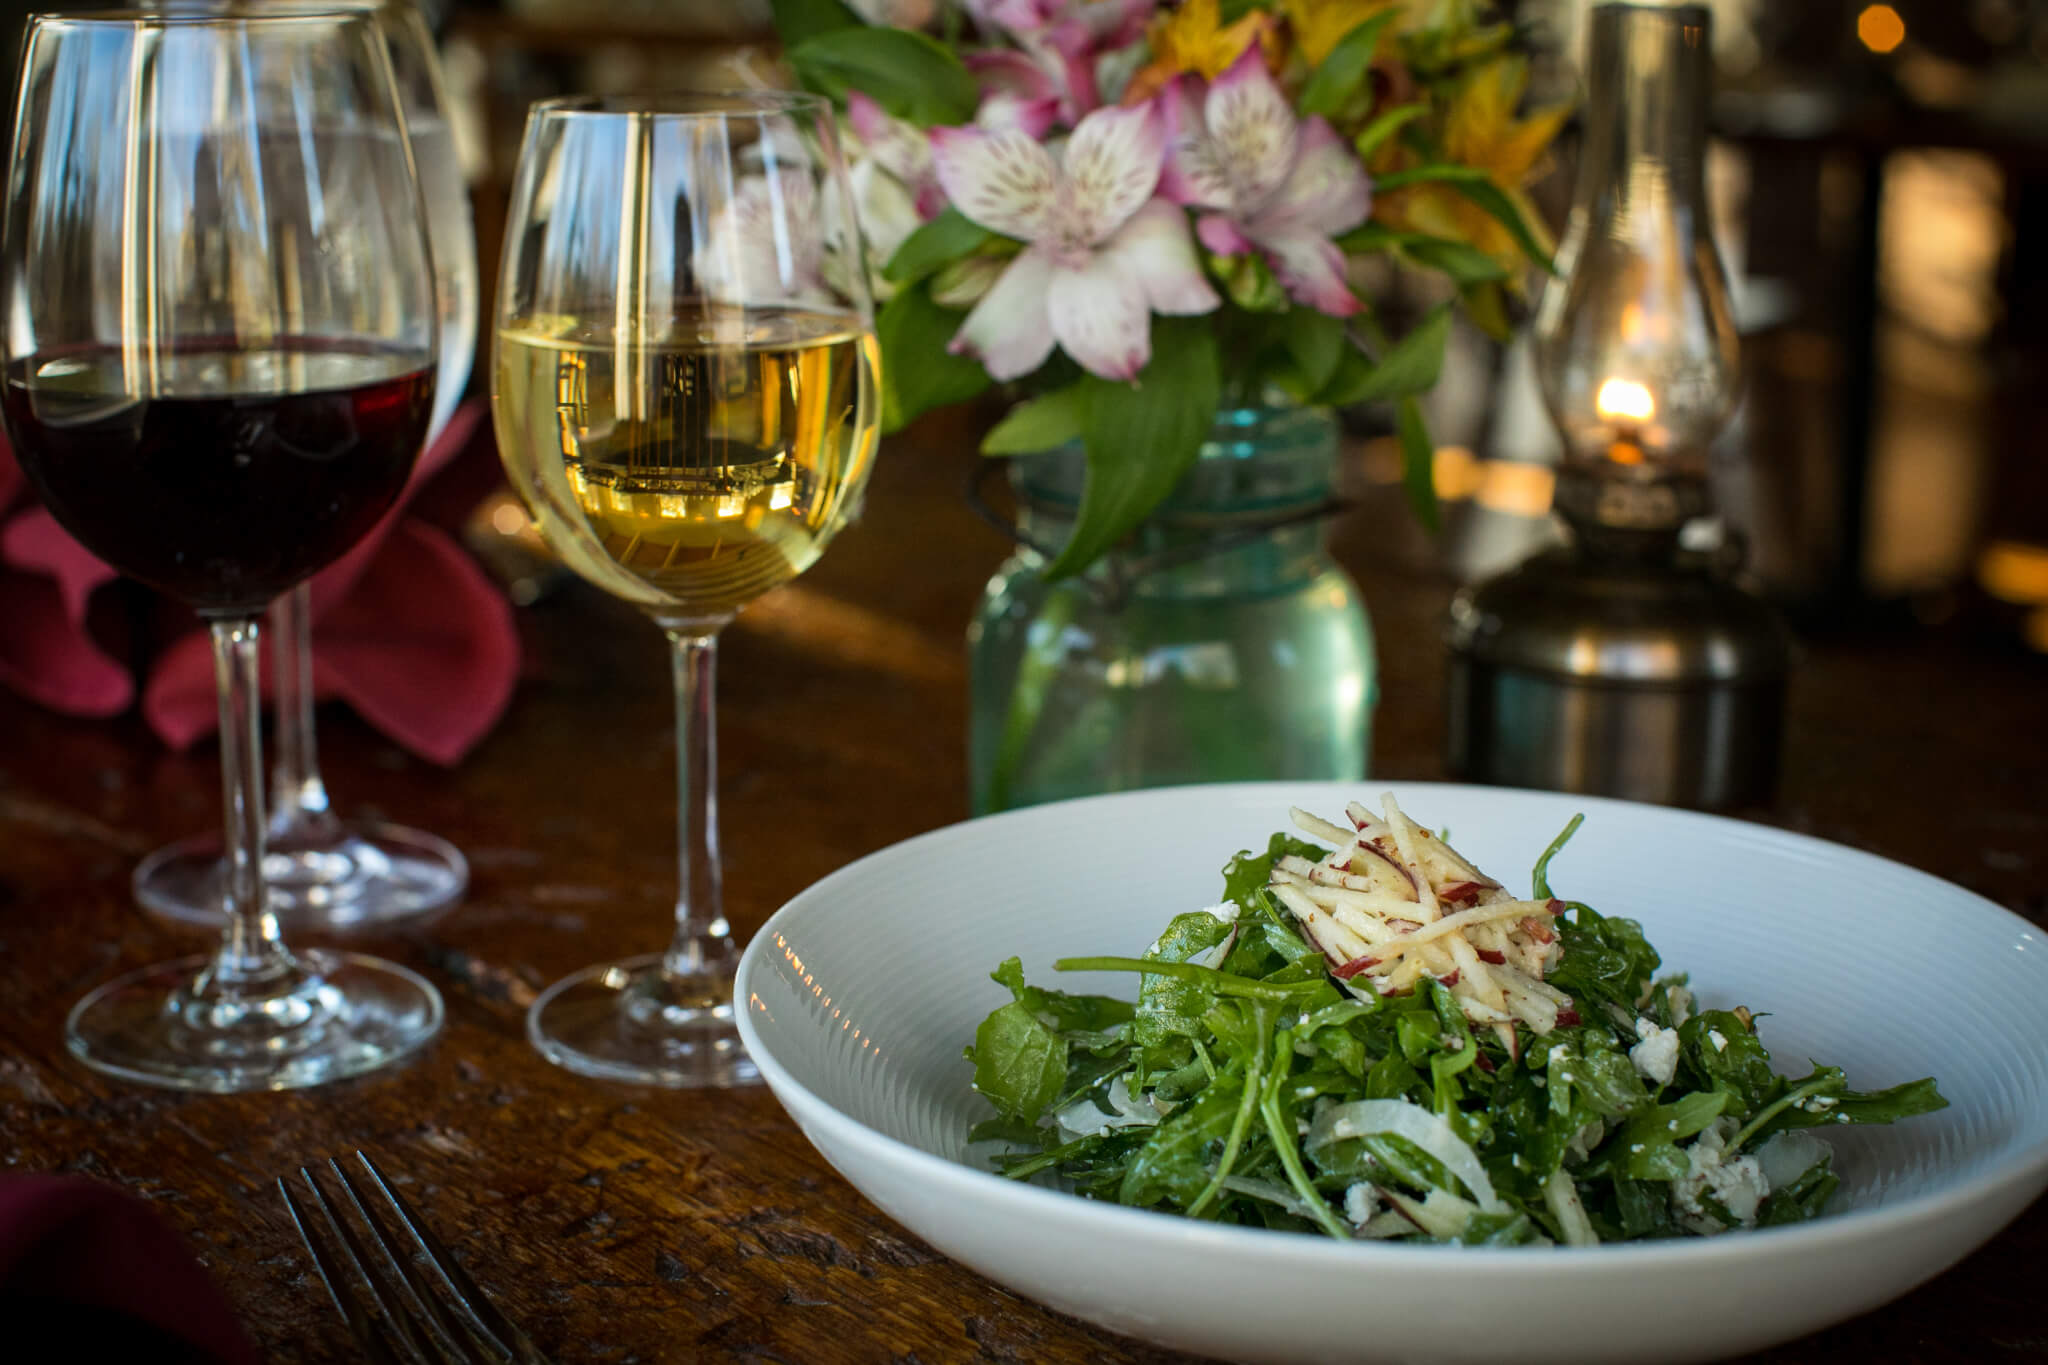 Red Clover signature salad with two glasses of wine on a set table